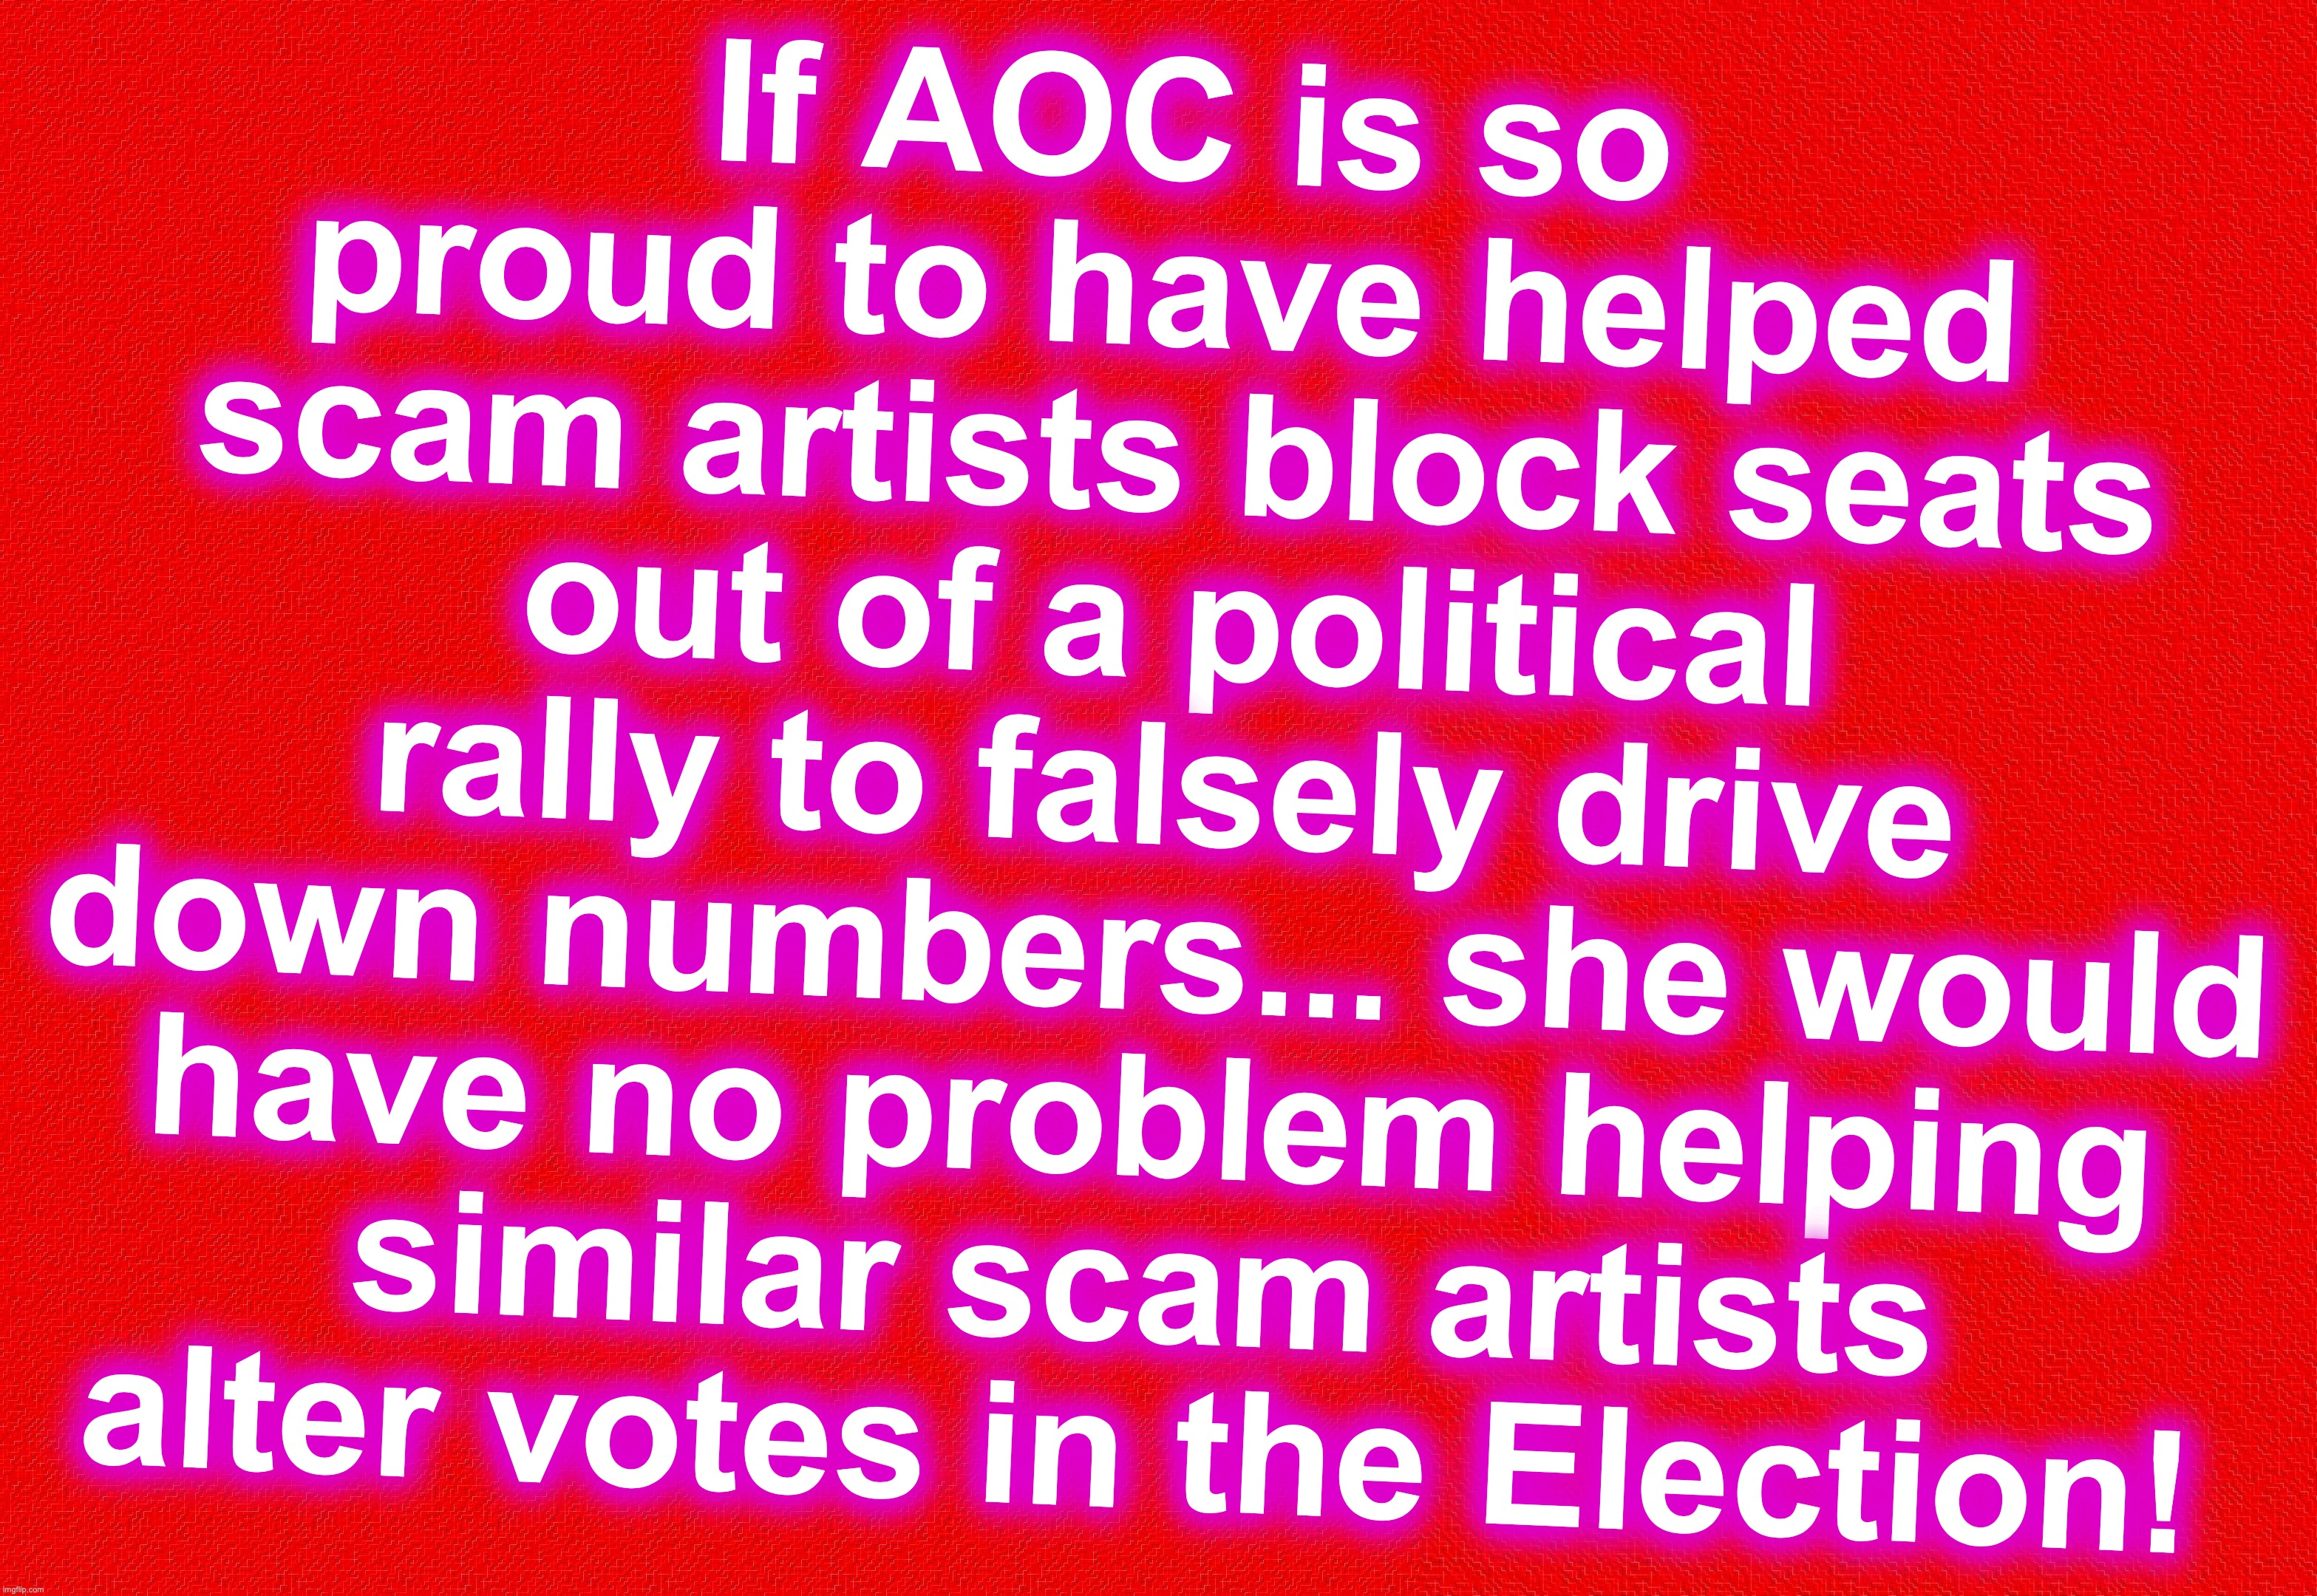 such integrity |  If AOC is so proud to have helped  scam artists block seats out of a political rally to falsely drive down numbers... she would have no problem helping similar scam artists alter votes in the Election! | image tagged in aoc,alexandria ocasio-cortez,scammers,votes | made w/ Imgflip meme maker